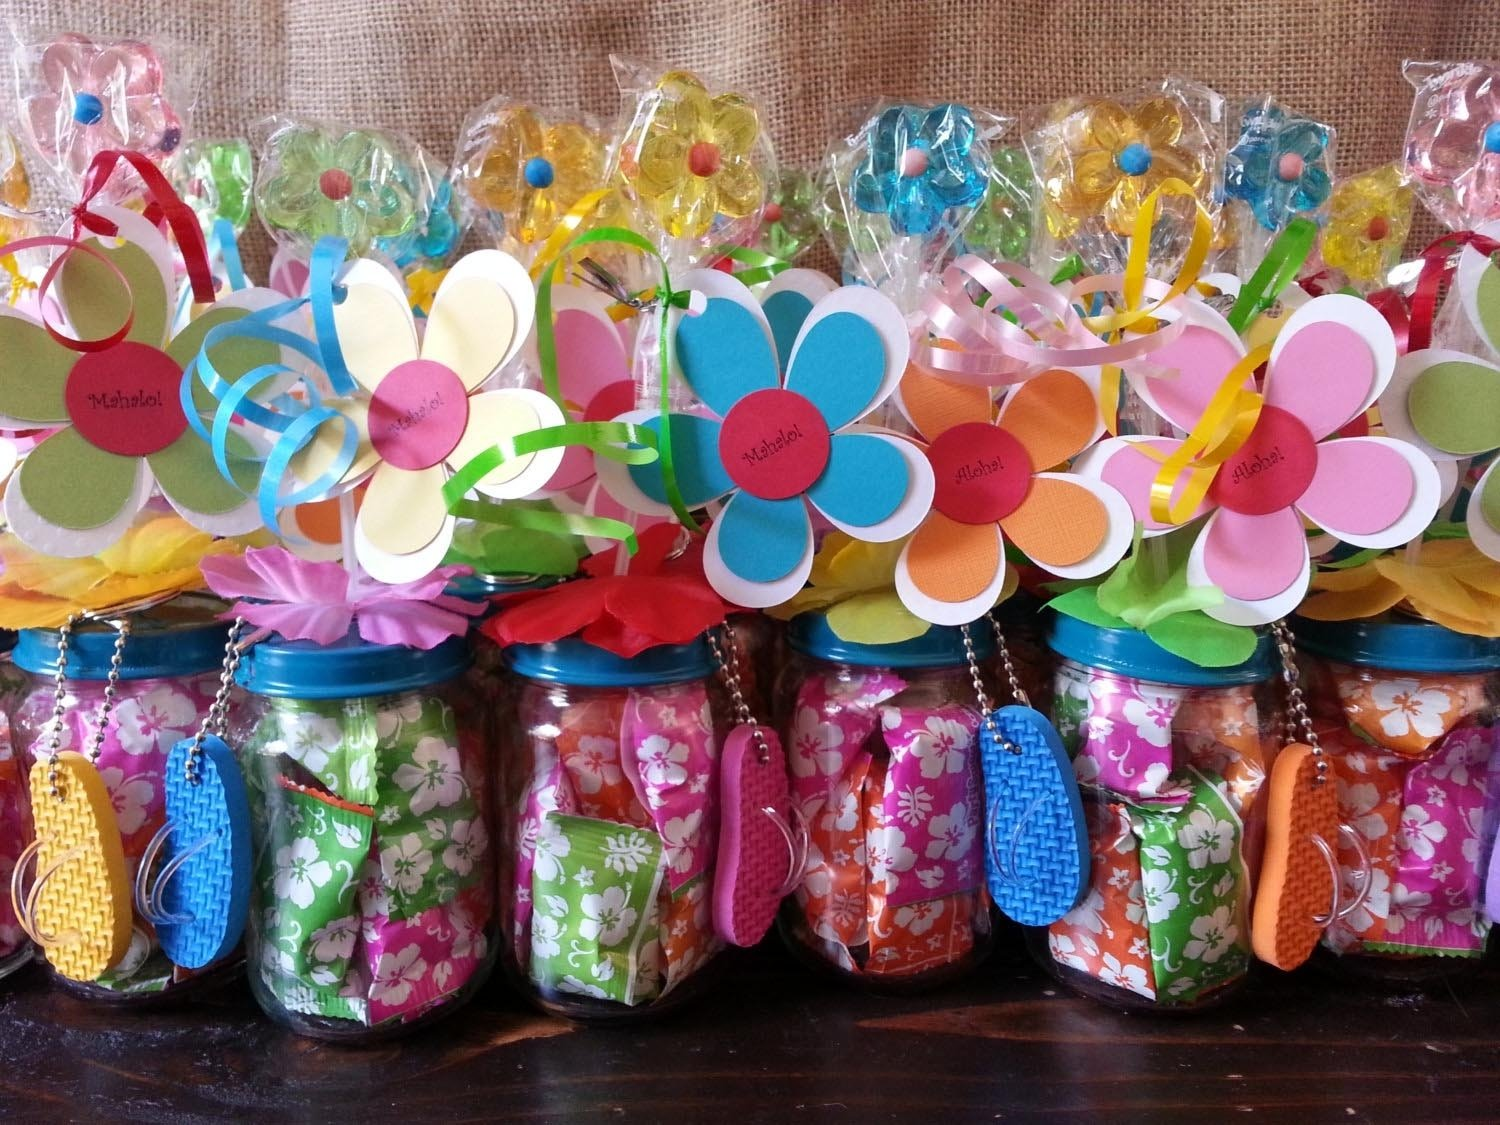 10 Spectacular Goodie Bag Ideas For Kids Birthday Parties amused goodie bag ideas for kids birthday parties 74 with kids 1 2020